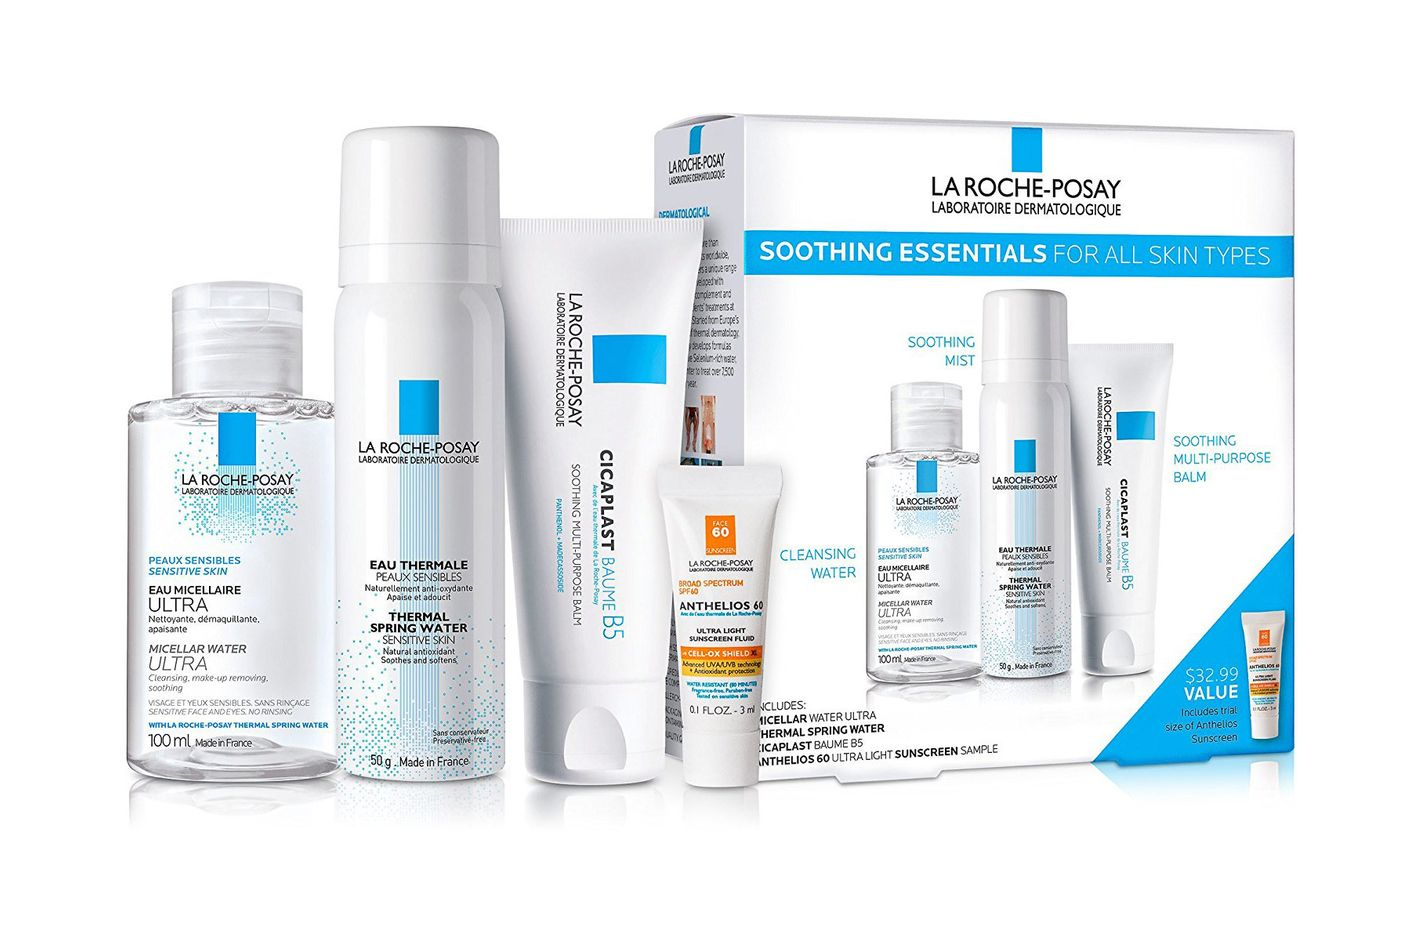 La Roche-Posay Soothing Essentials Set